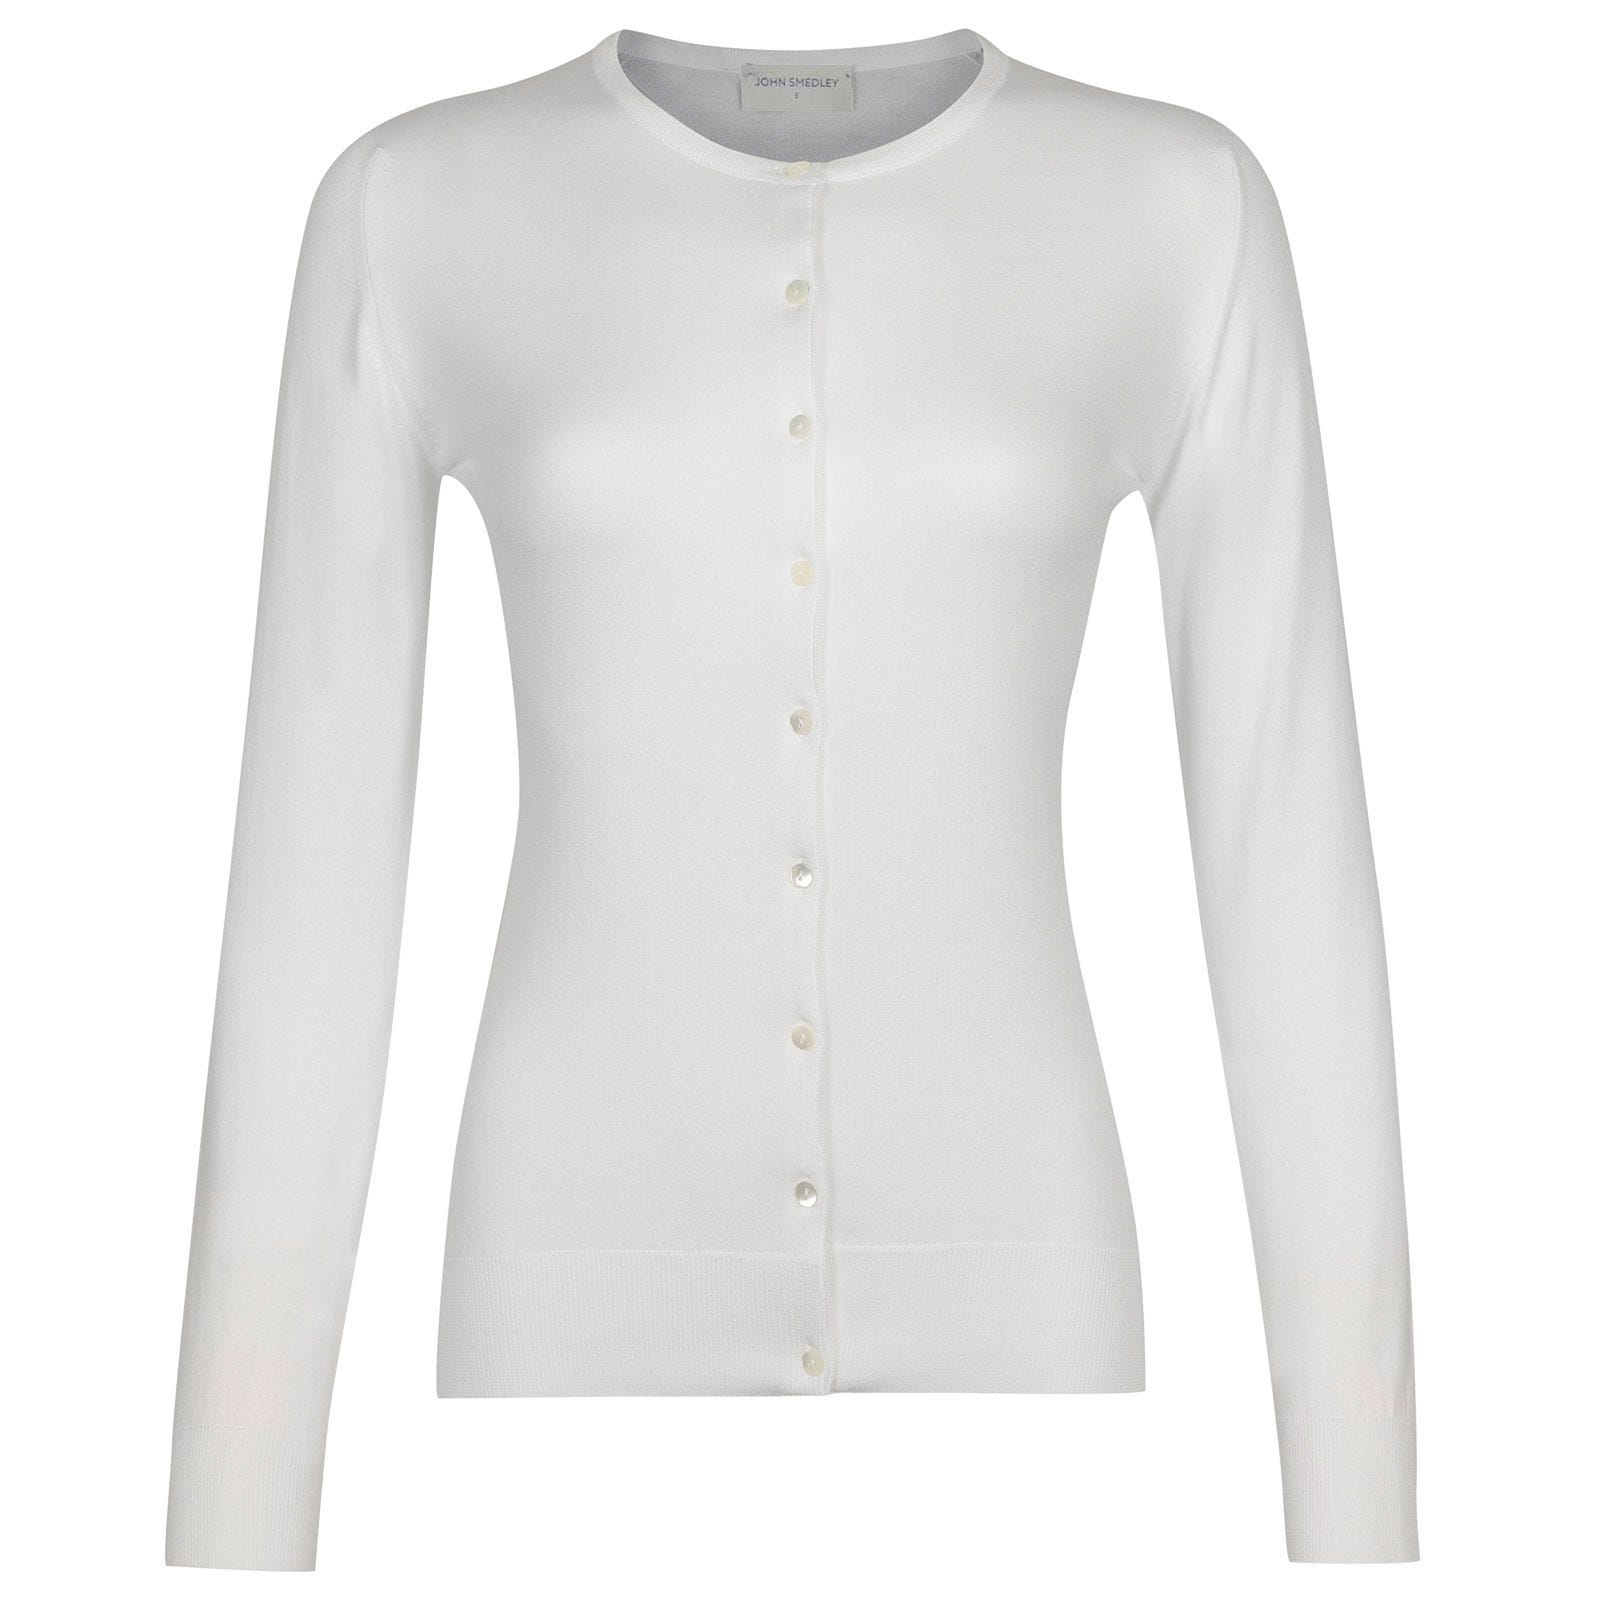 John Smedley Islington Sea Island Cotton Cardigan in White-XL